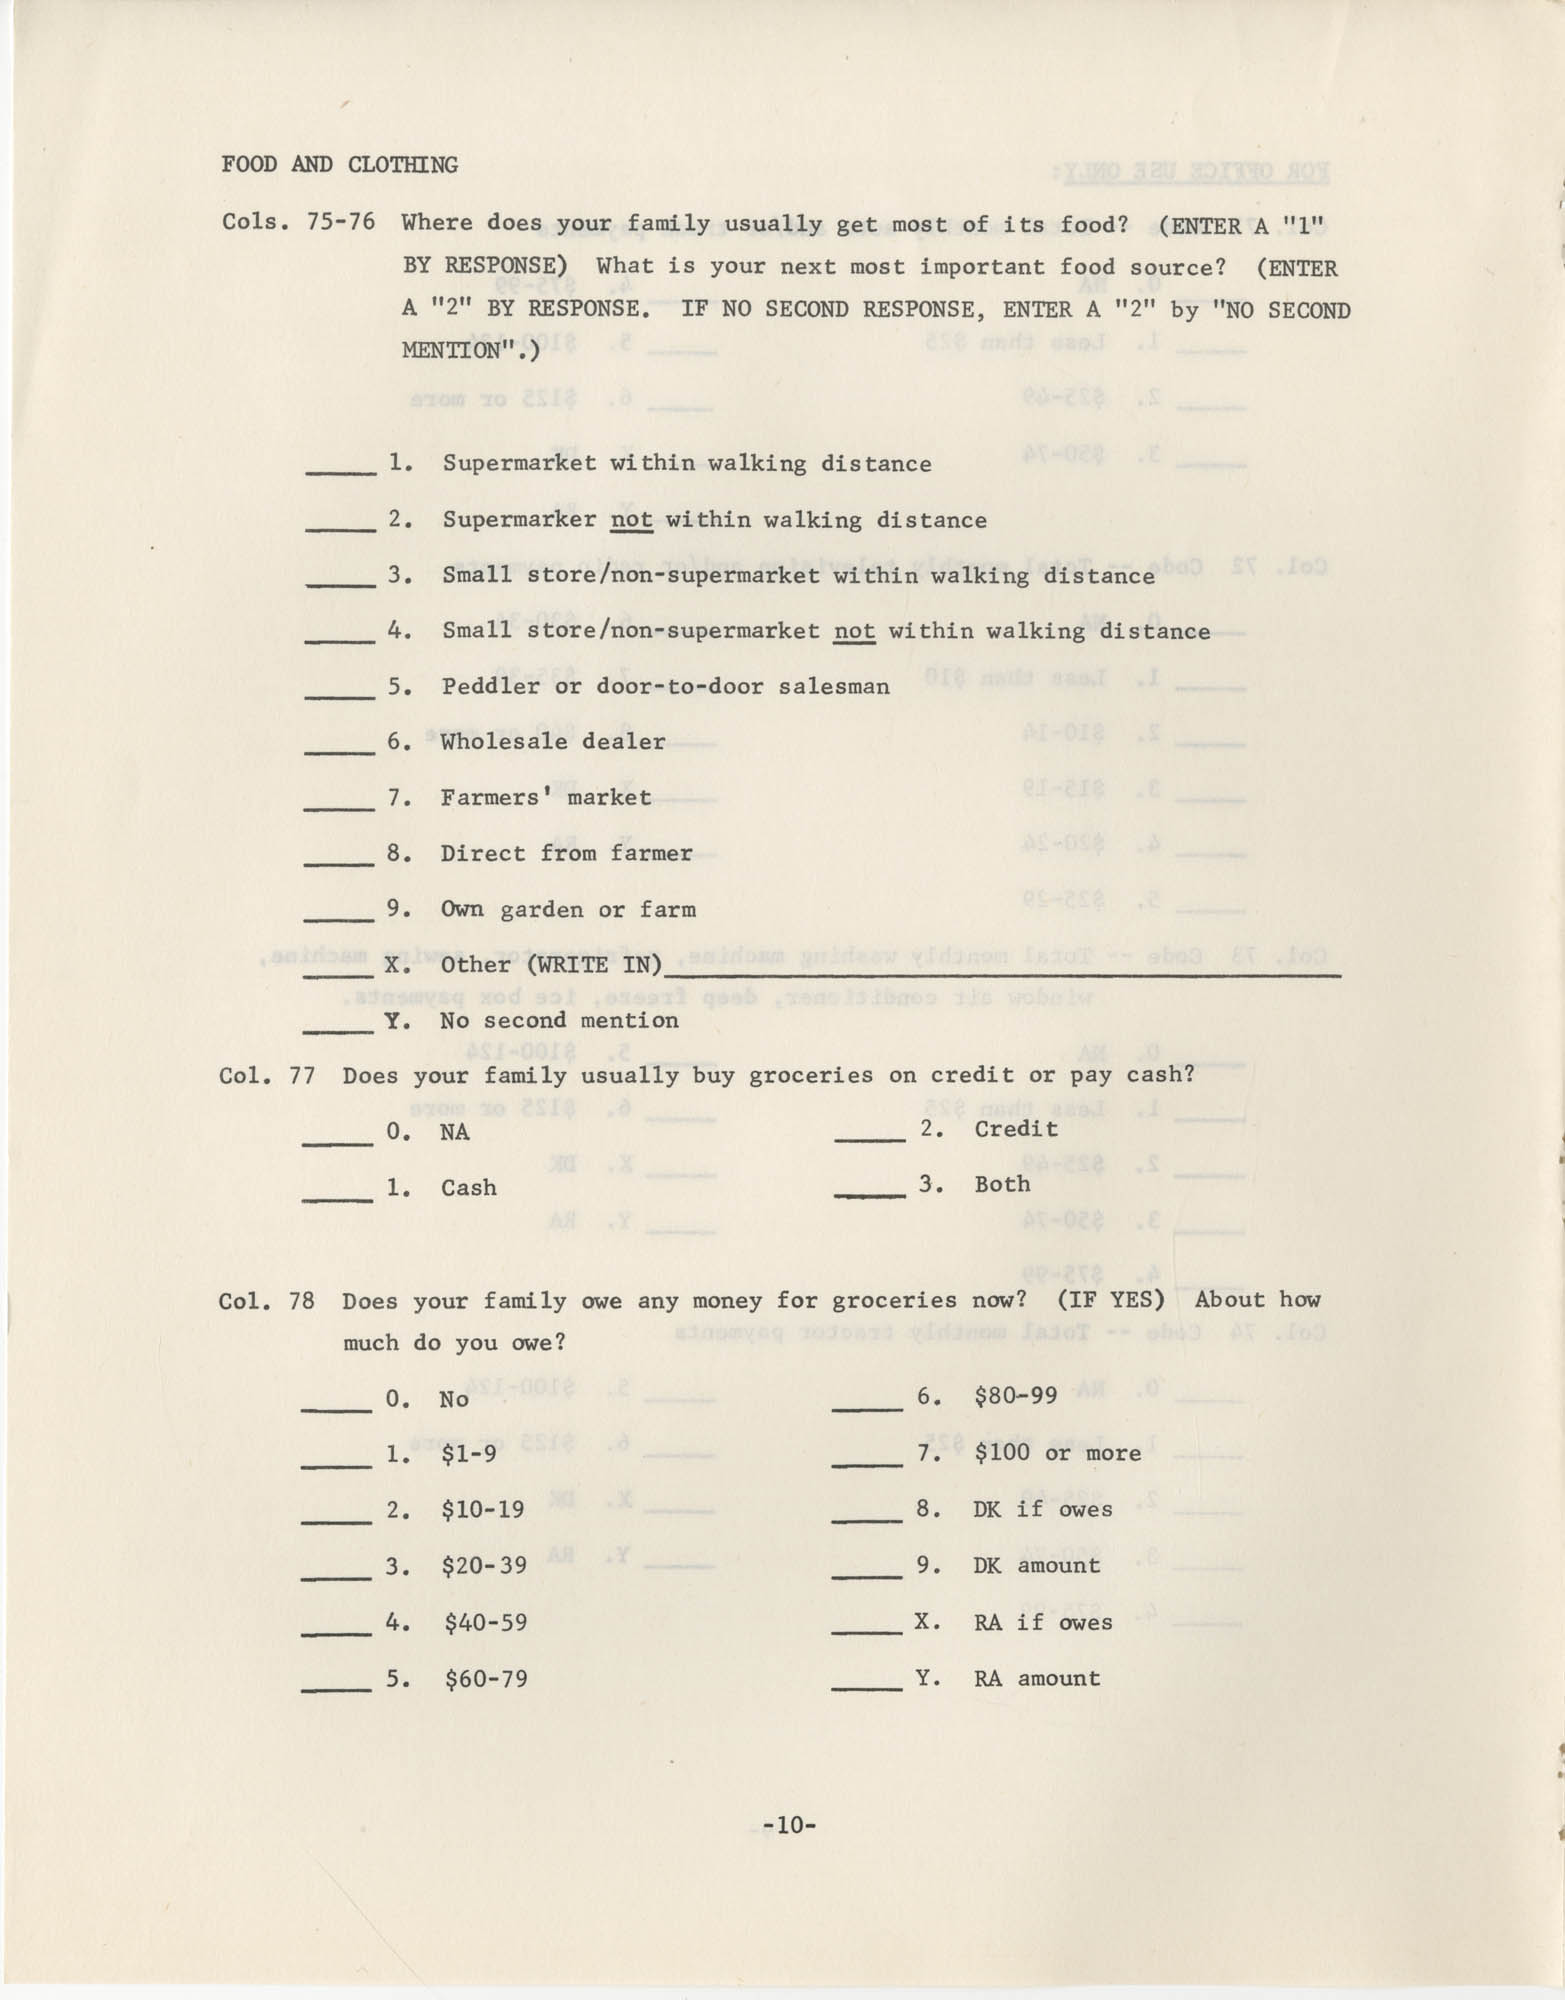 Household Questionnaire, Page 10